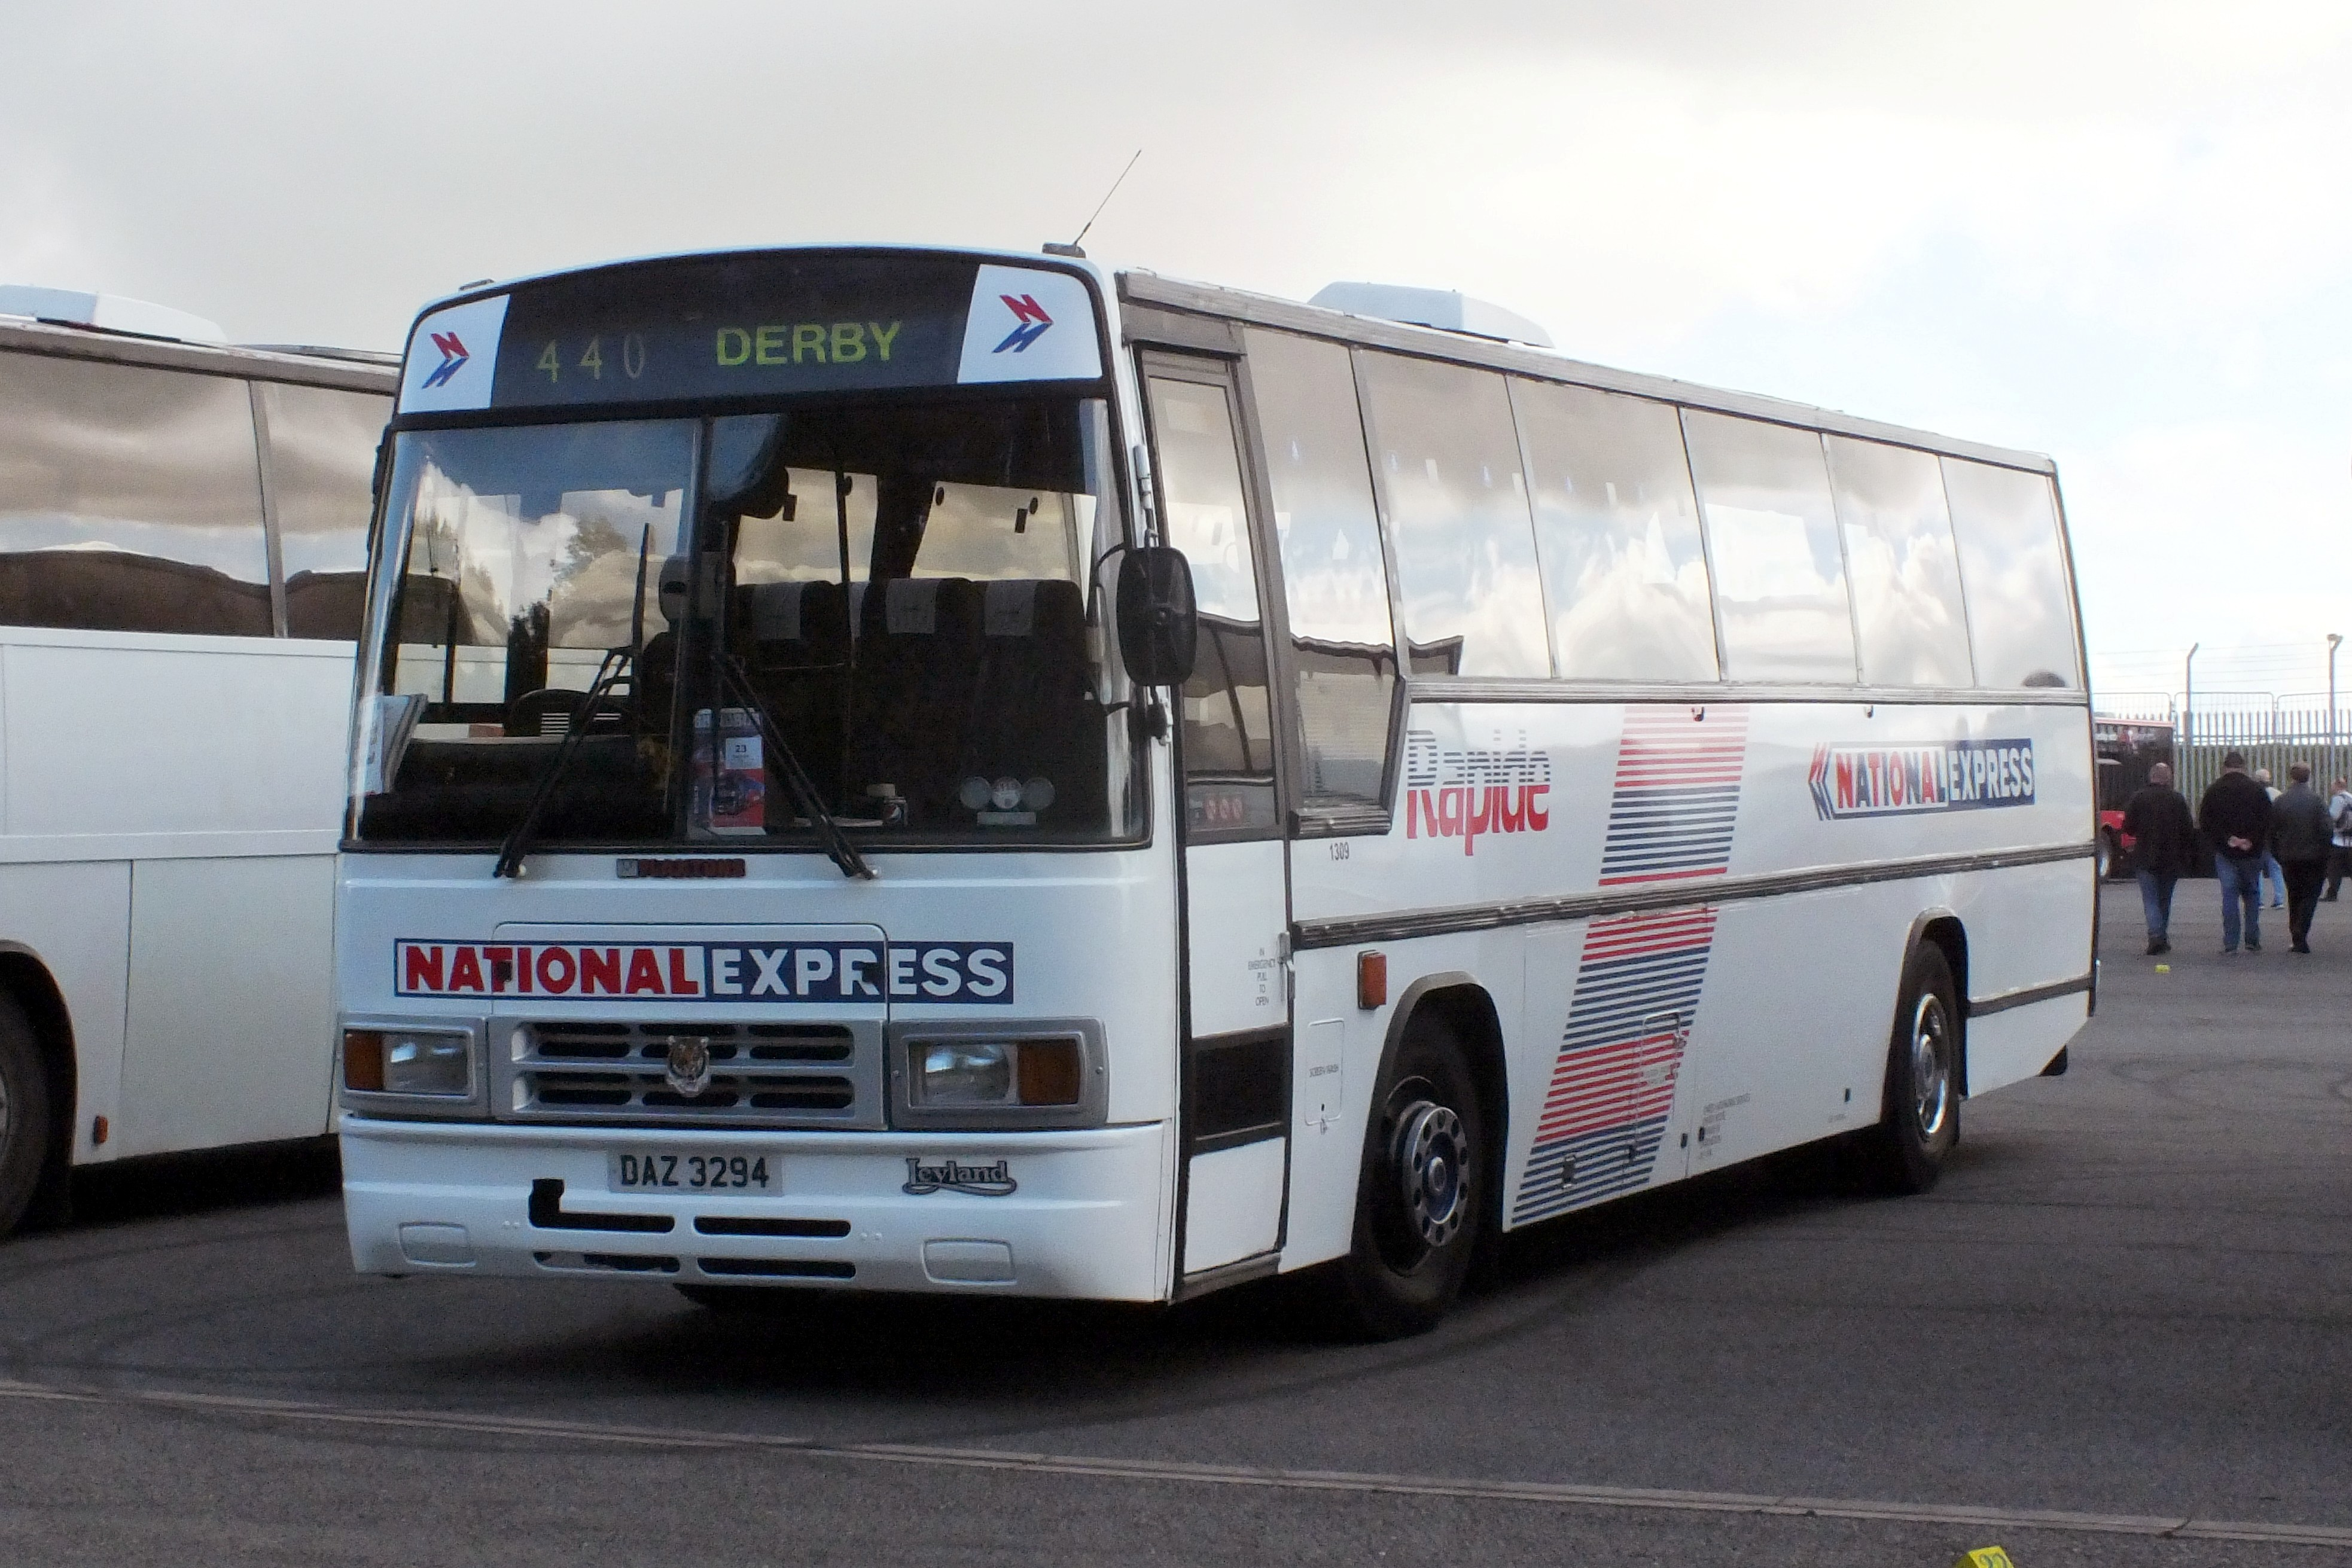 17 September 2017 Showbus, Donington. 445.jpg